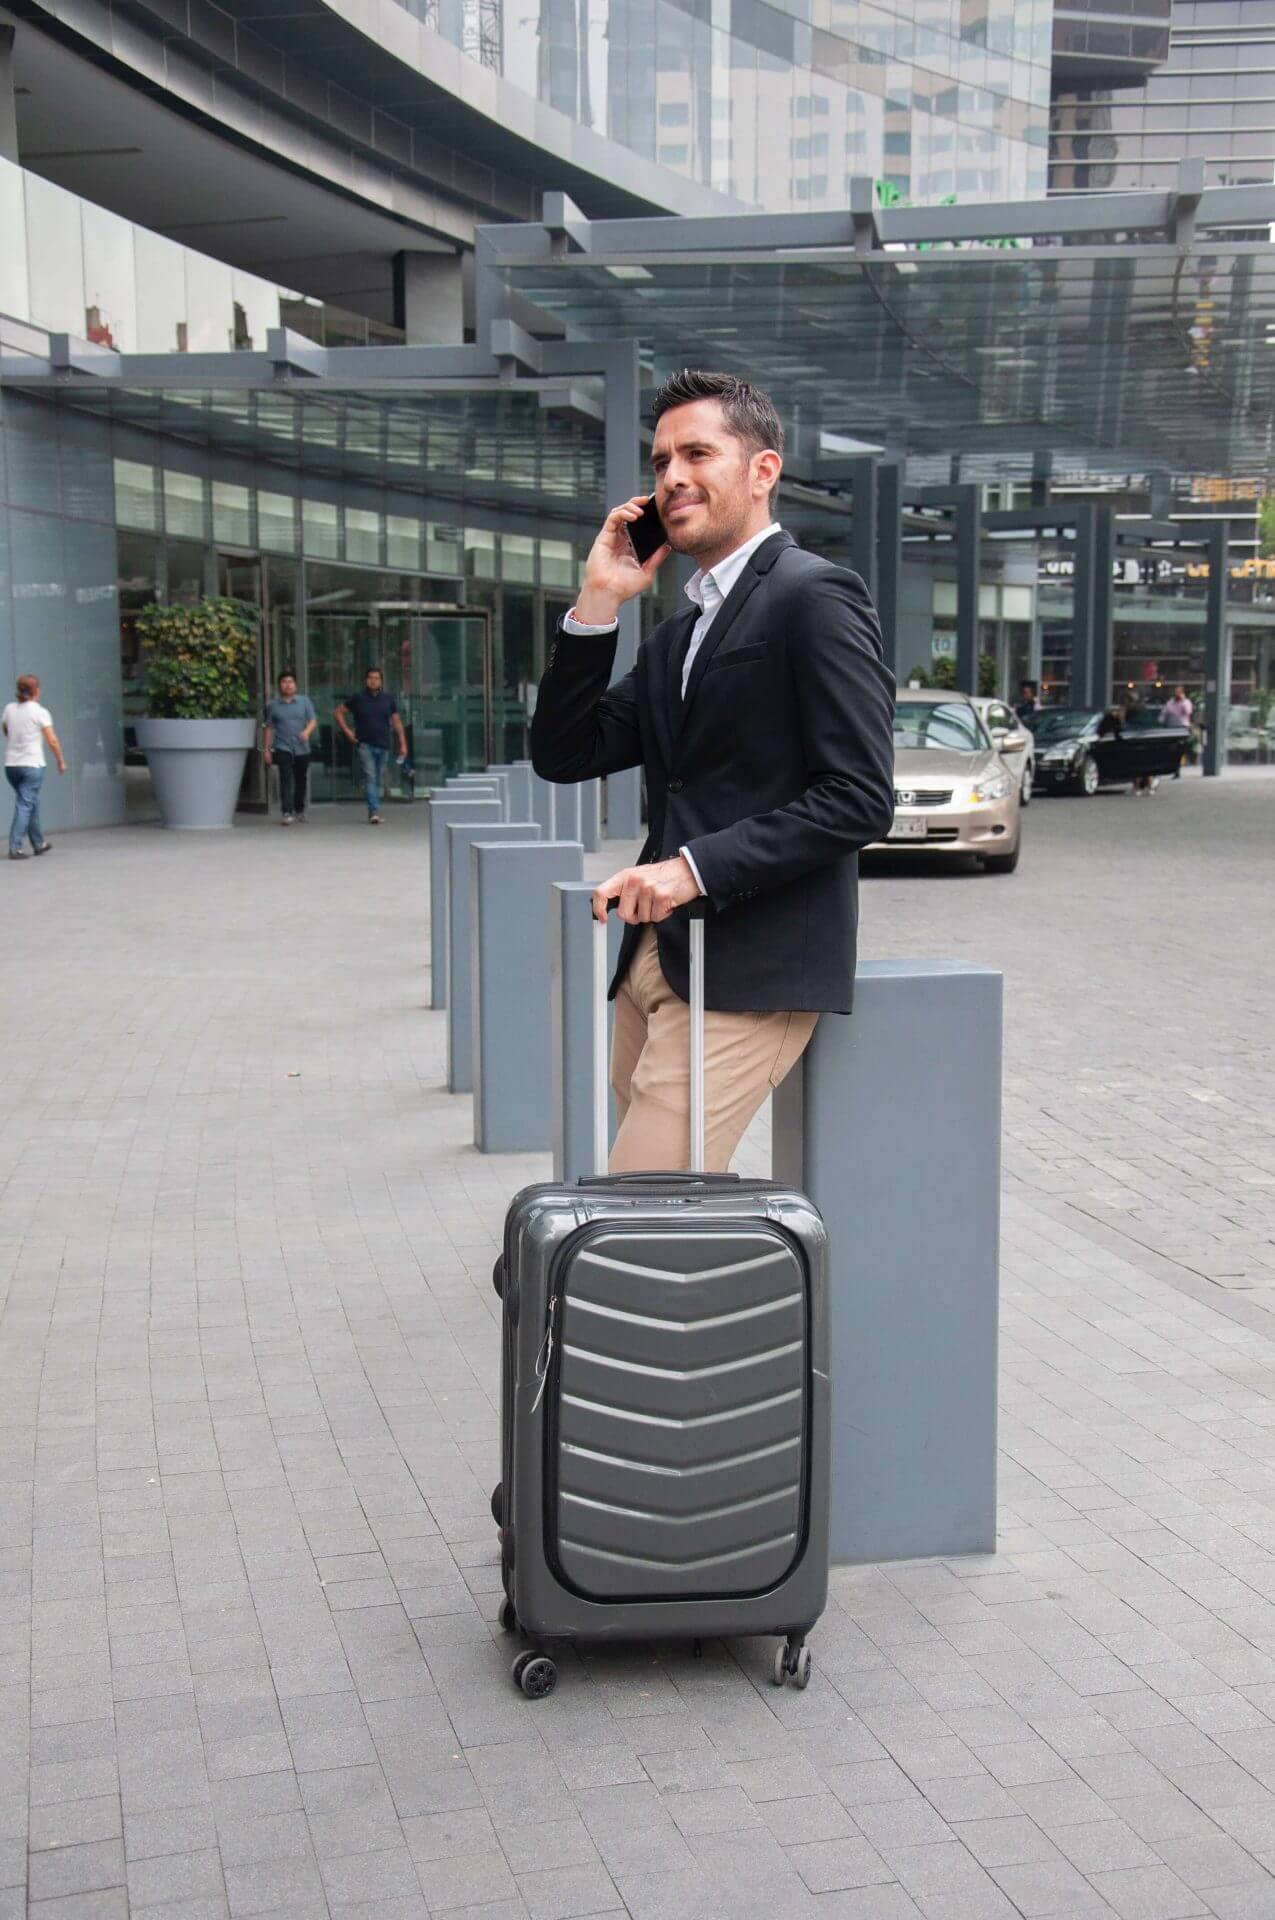 airport business cars 2229526 - Time to Update your Mobile Phone Policy?